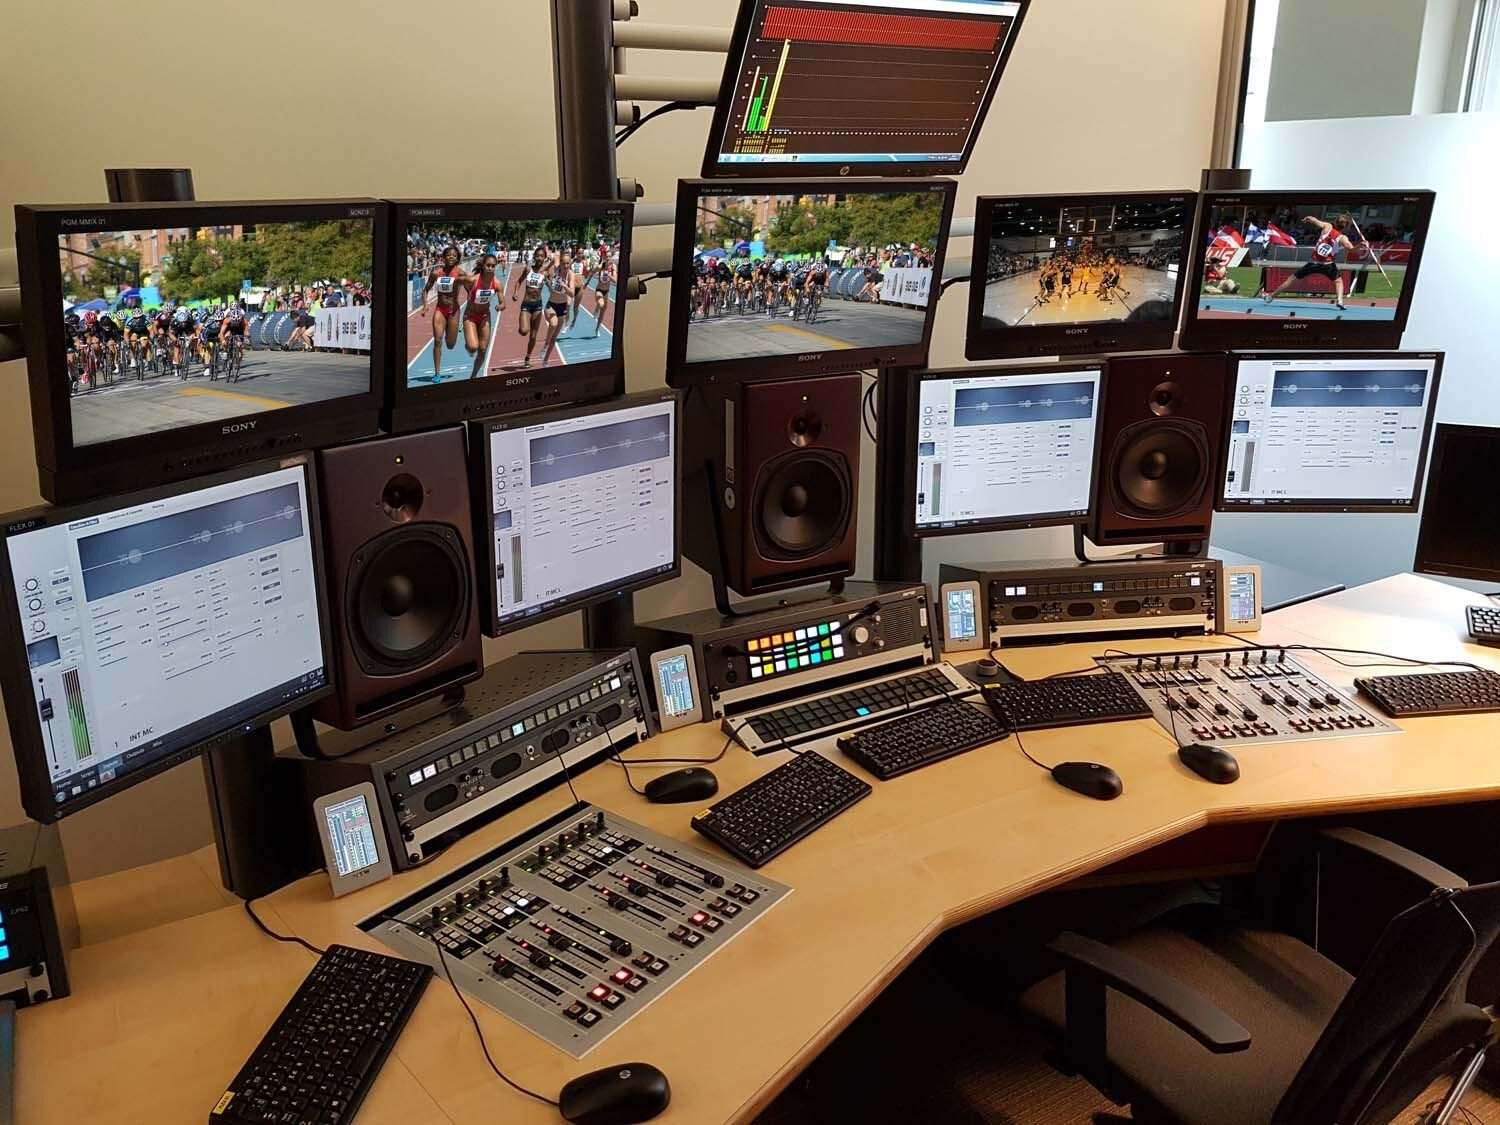 Fabulous Radio Television Suisse Teams Up With Stage Tec For Sports Download Free Architecture Designs Scobabritishbridgeorg